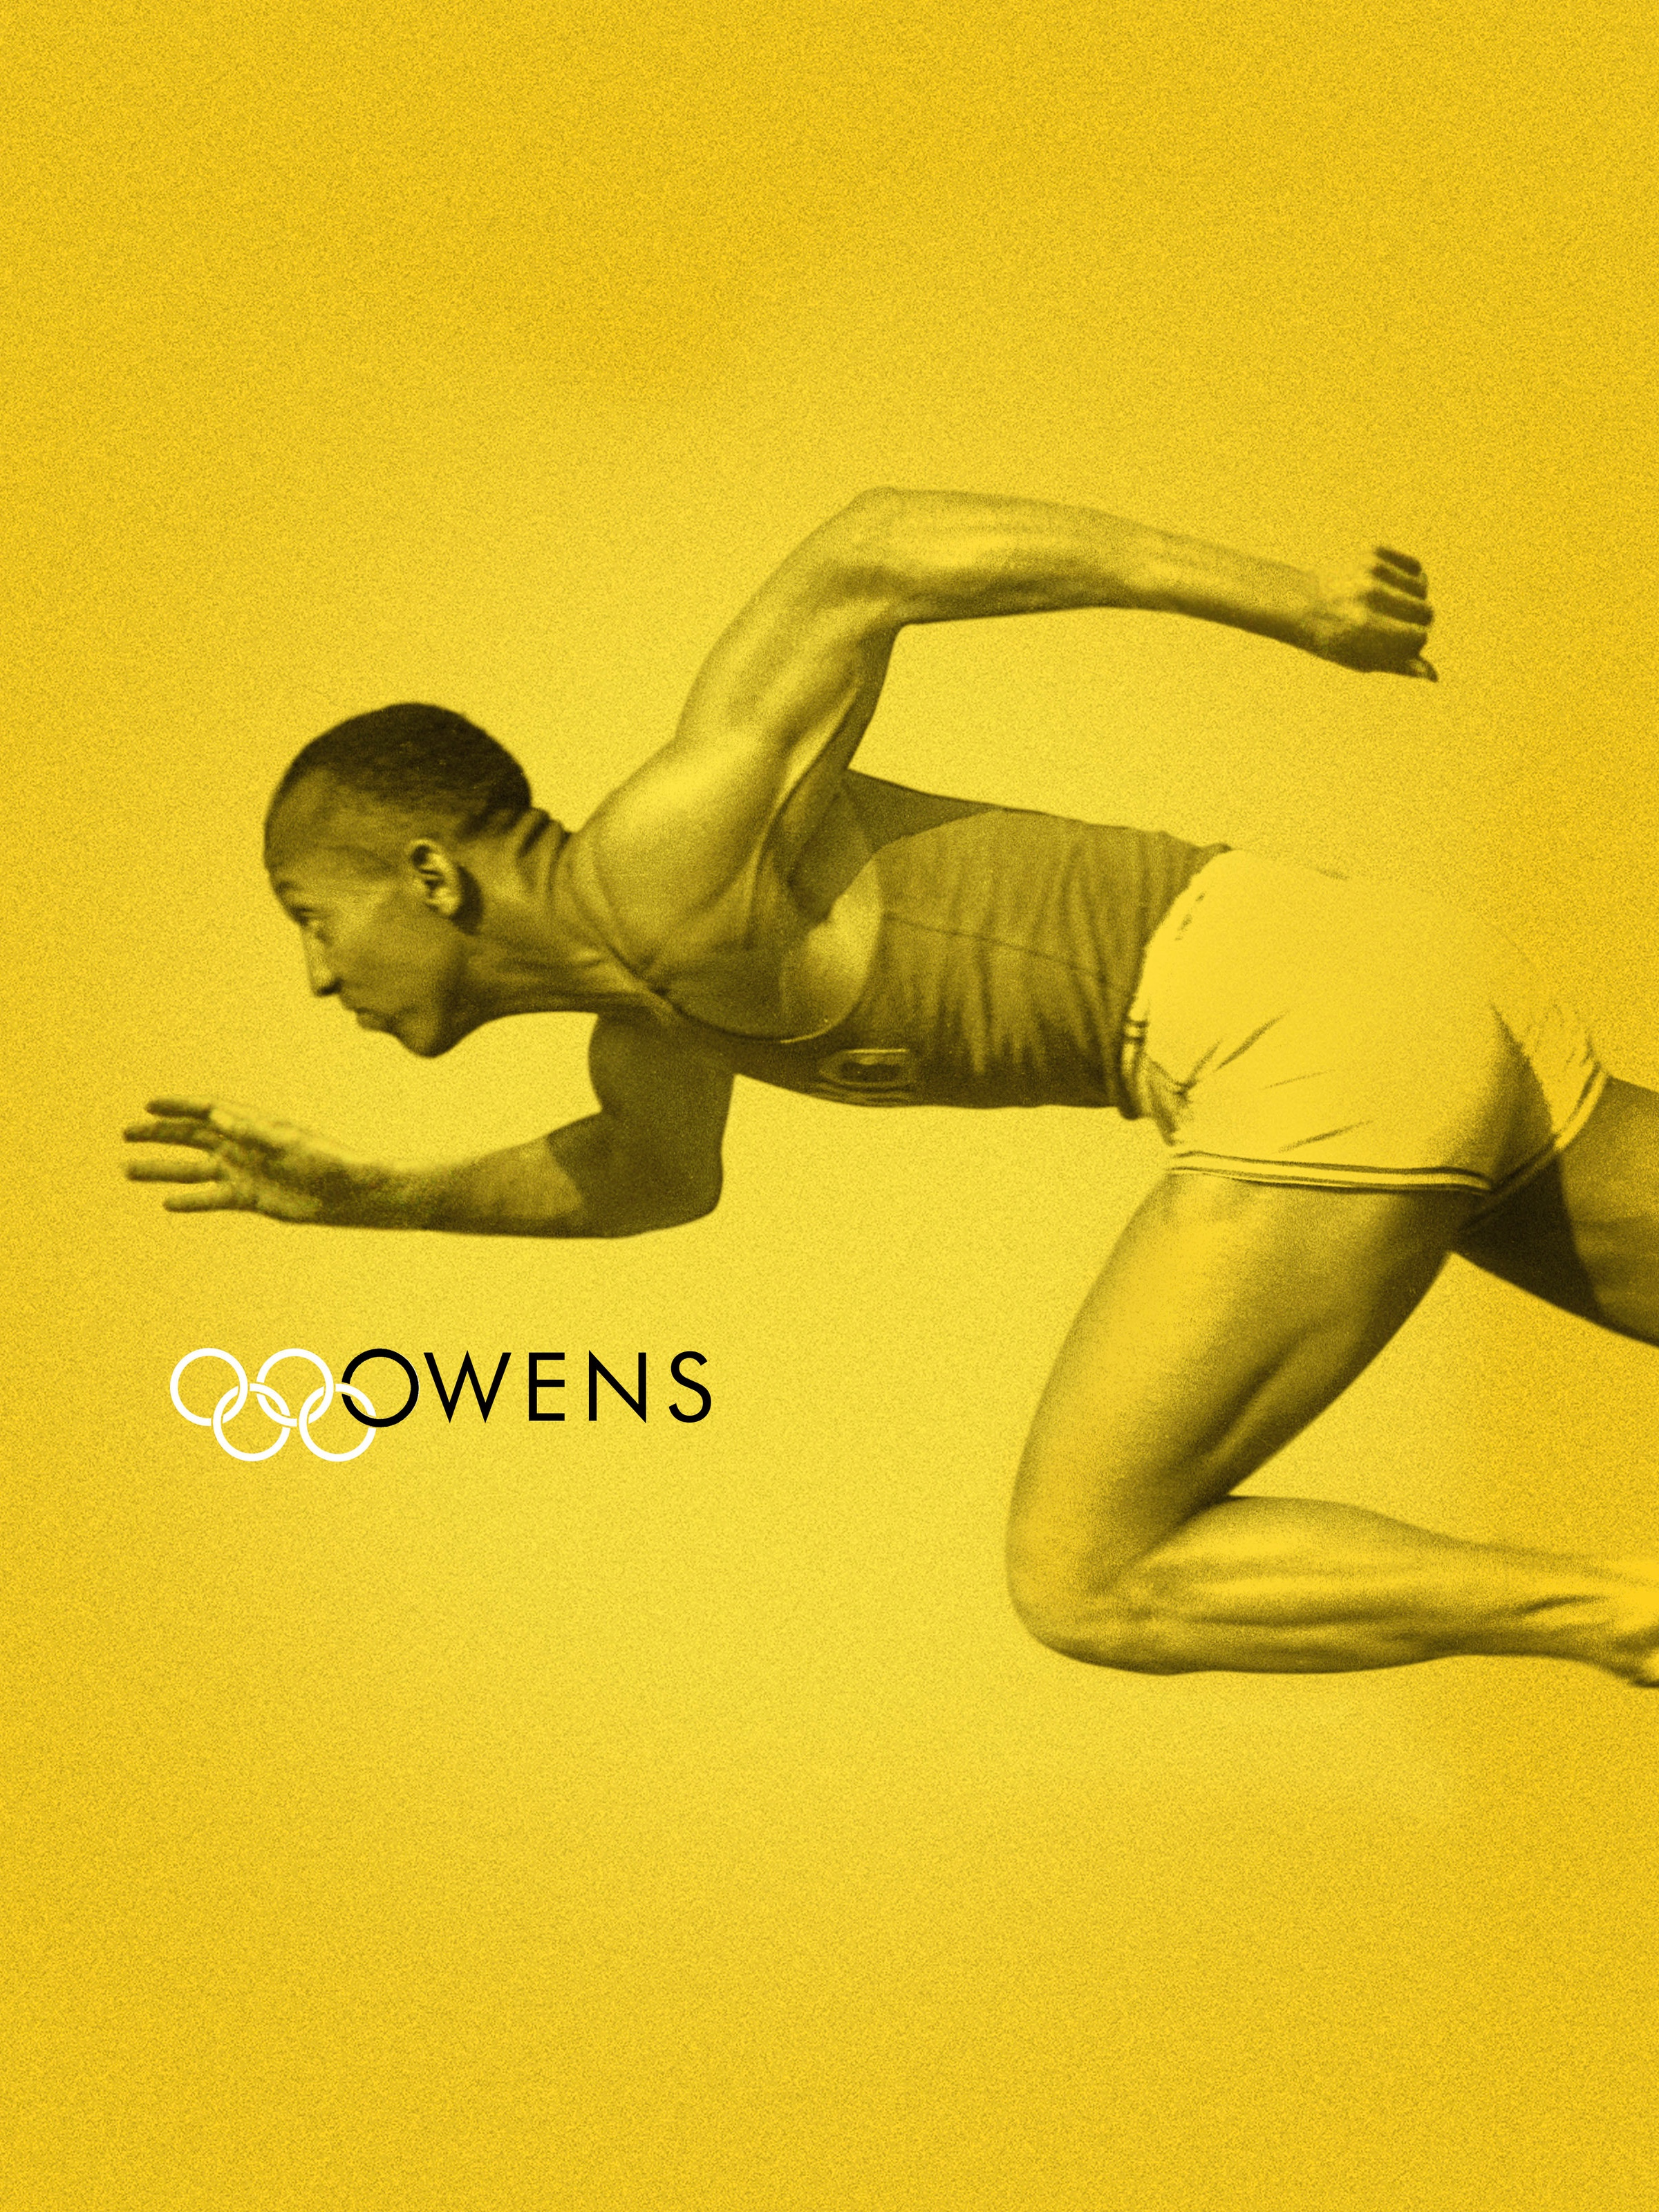 Lawrence County  - Home of Jesse Owens